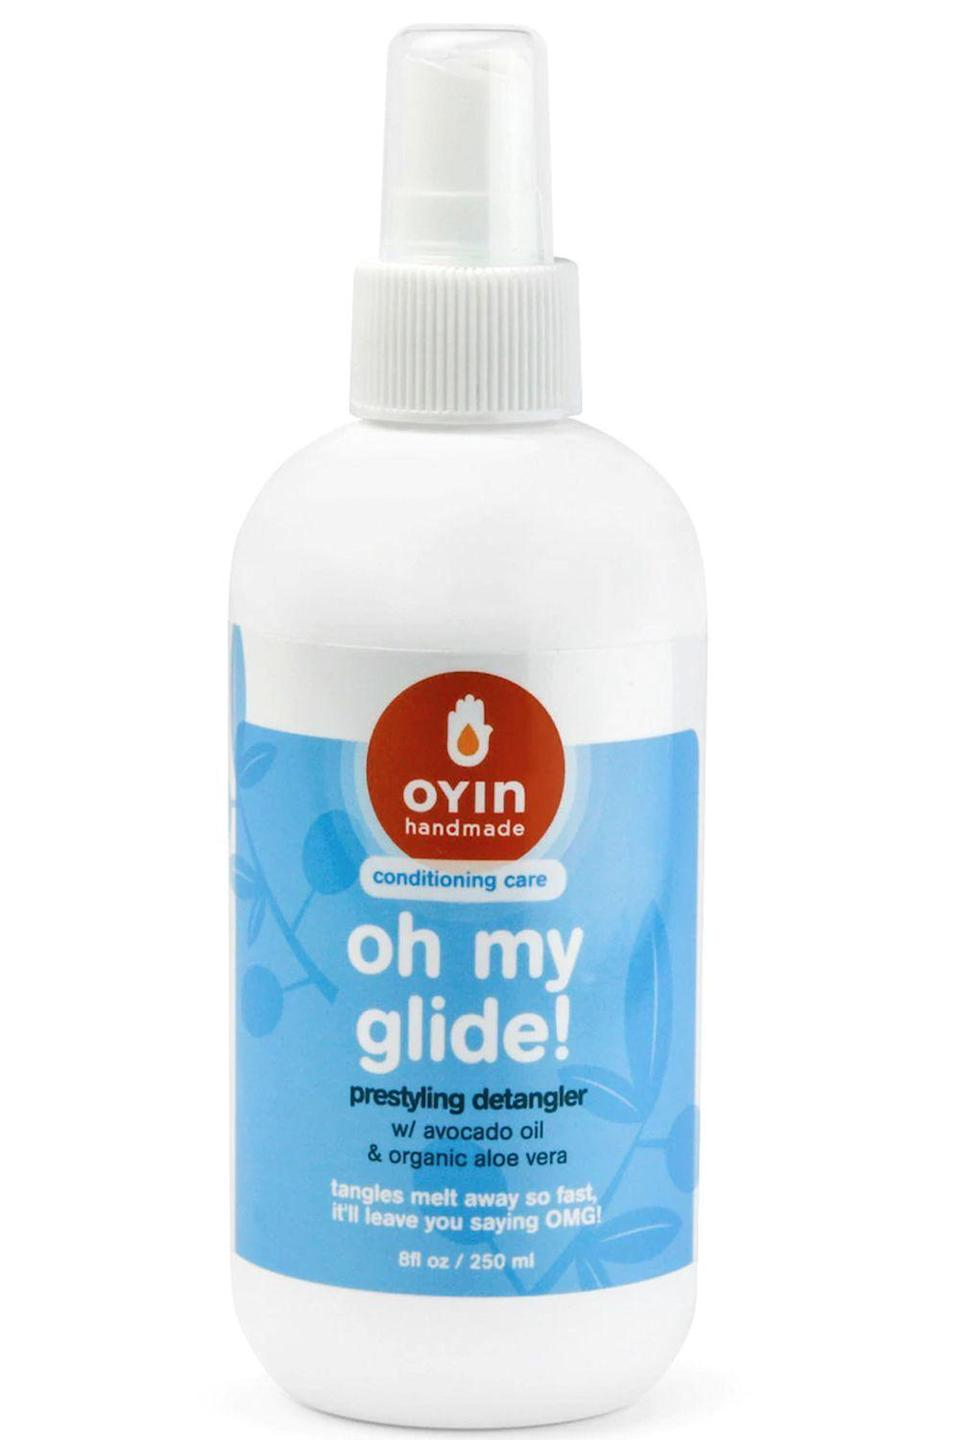 """<p><strong>Oyin Handmade</strong></p><p>amazon.com</p><p><strong>$12.98</strong></p><p><a href=""""https://www.amazon.com/dp/B07B537RYG?tag=syn-yahoo-20&ascsubtag=%5Bartid%7C10049.g.34358051%5Bsrc%7Cyahoo-us"""" rel=""""nofollow noopener"""" target=""""_blank"""" data-ylk=""""slk:Shop Now"""" class=""""link rapid-noclick-resp"""">Shop Now</a></p><p>Packed with oils, like sweet orange, this detangling spray<strong> loosens up any knots before you add <a href=""""https://www.cosmopolitan.com/style-beauty/beauty/g14506772/curly-hair-shampoo/"""" rel=""""nofollow noopener"""" target=""""_blank"""" data-ylk=""""slk:shampoo"""" class=""""link rapid-noclick-resp"""">shampoo</a>.</strong> It also adds slip to help your detangling brush slide through your hair, and injects a dose of hydration to moisturize your curls.</p>"""